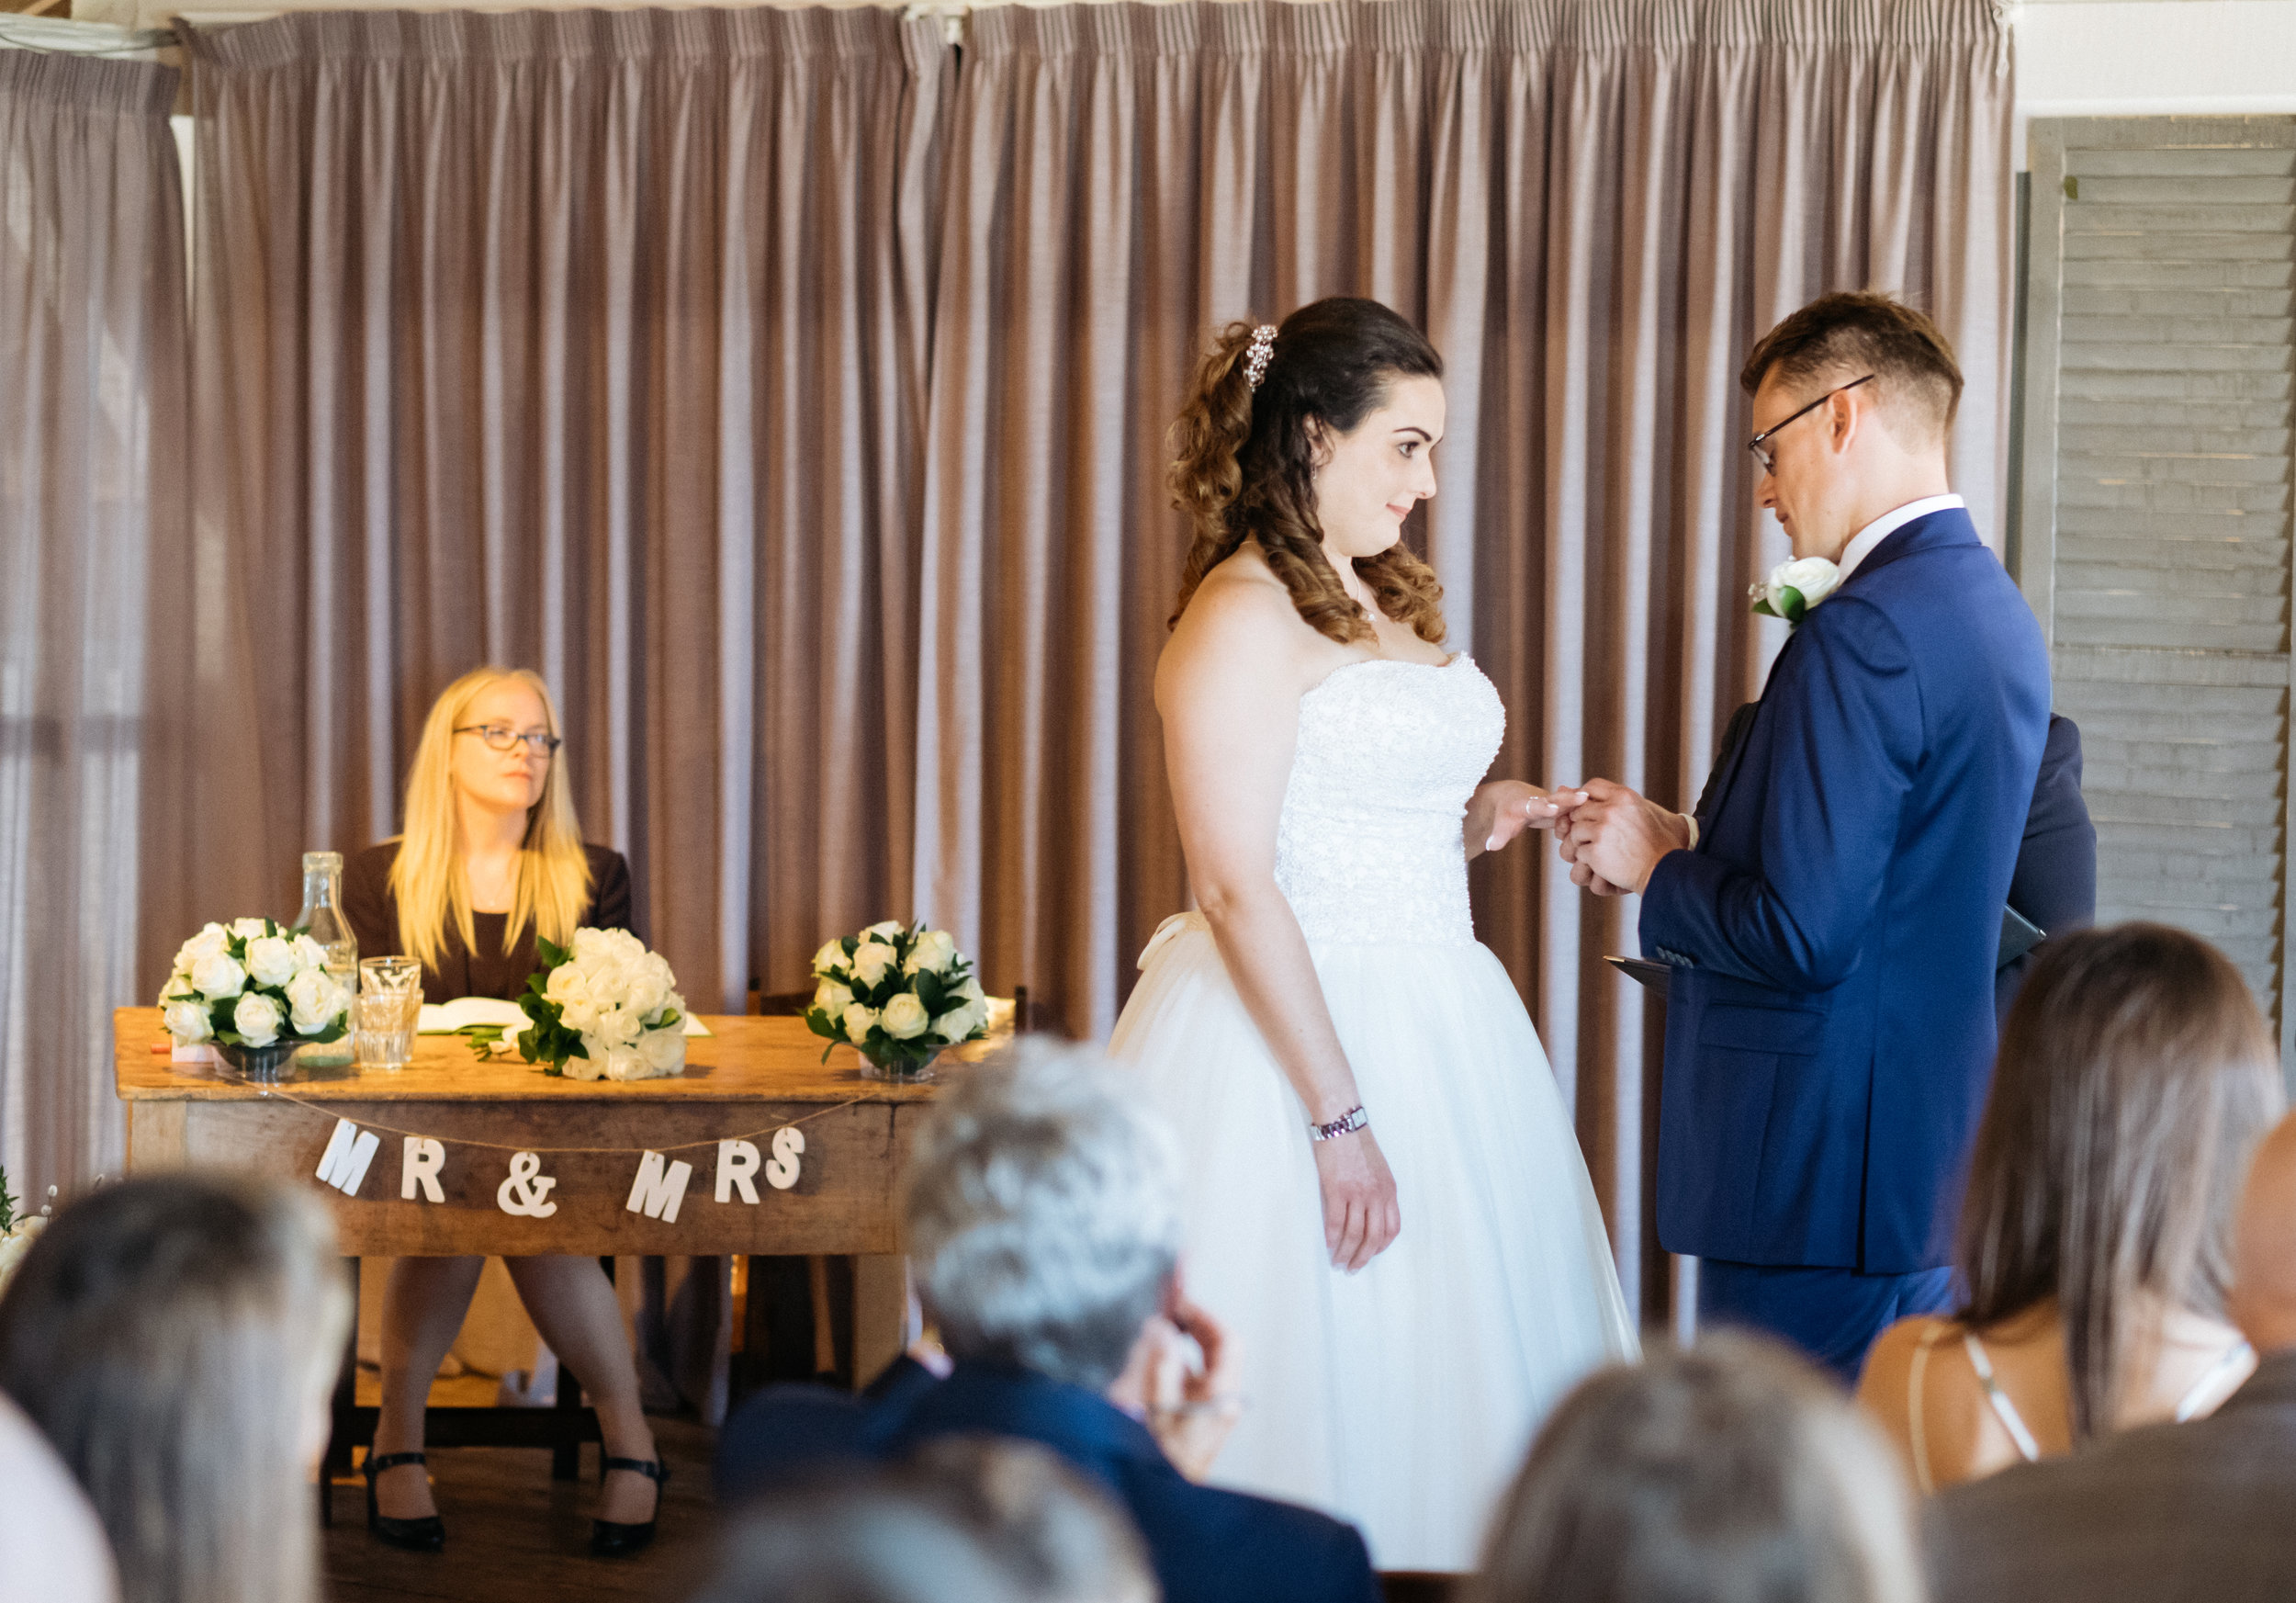 Getting married at East Quay wedding venue